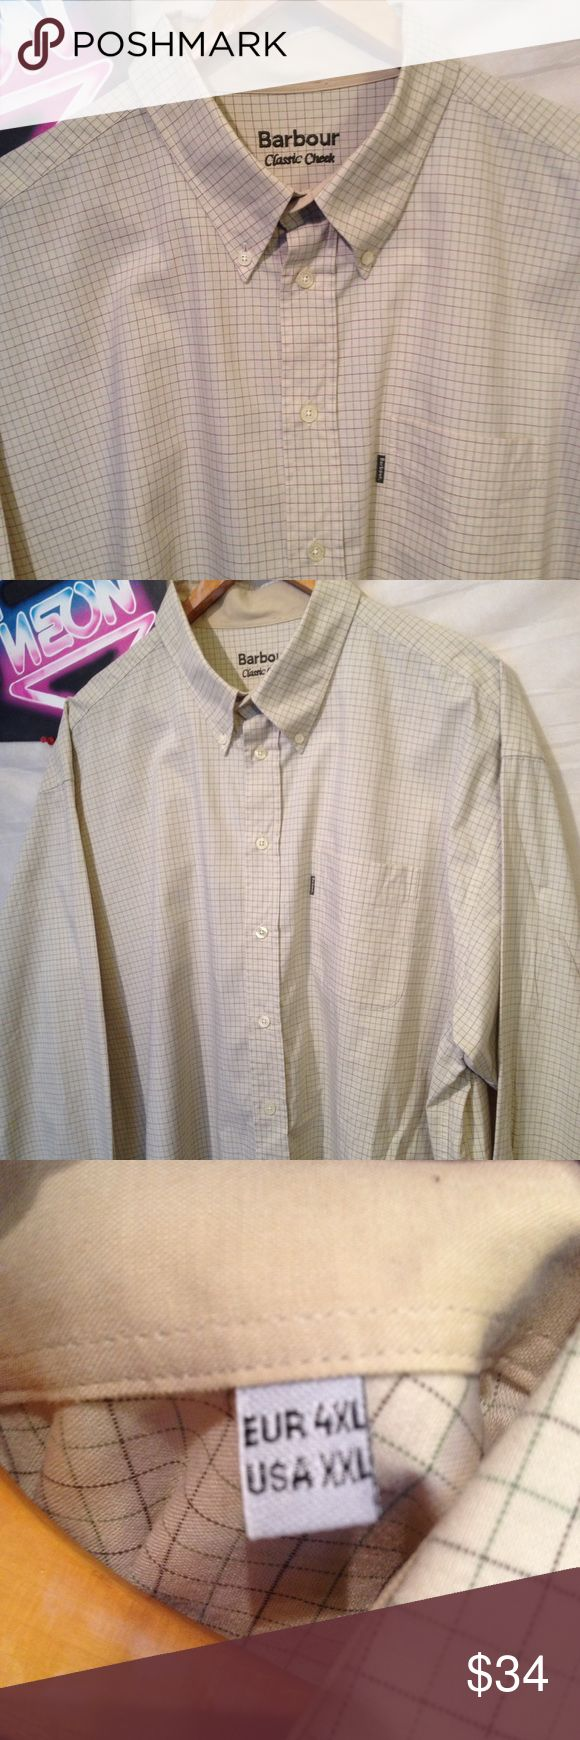 "Barbour beige classic cheek dress shirt size XXL Used shirt, very good used condition with some signs of use, button front, long sleeve, size XXL chest - 28"" shoulder to hem - 33"" sleeve - 25"" Barbour Shirts Dress Shirts"